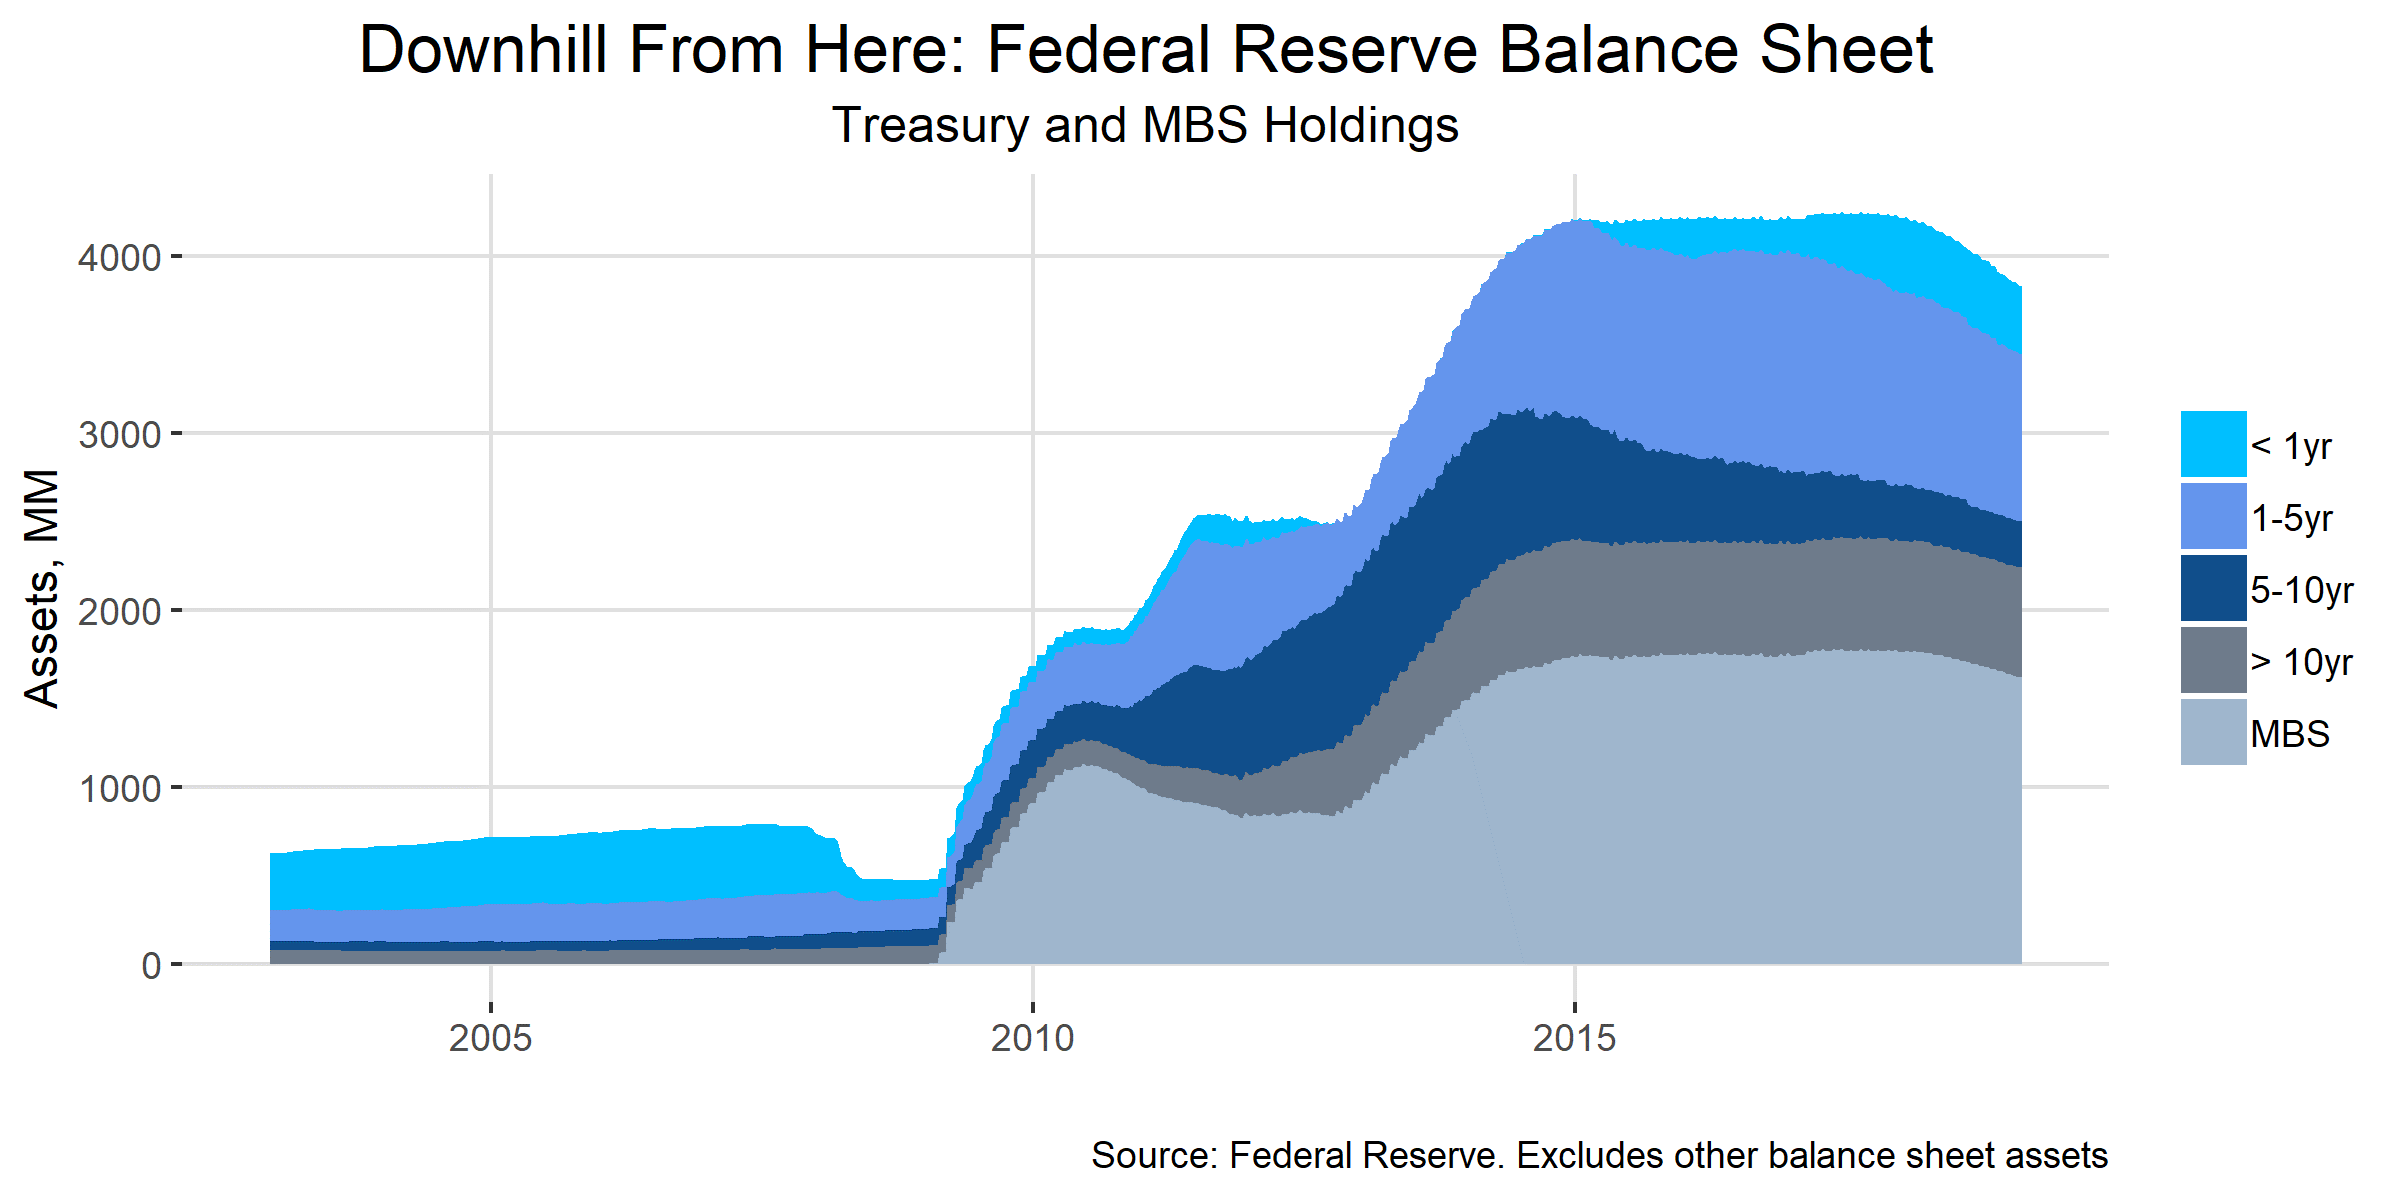 Downhill from here Federal Reserve Balance Sheet